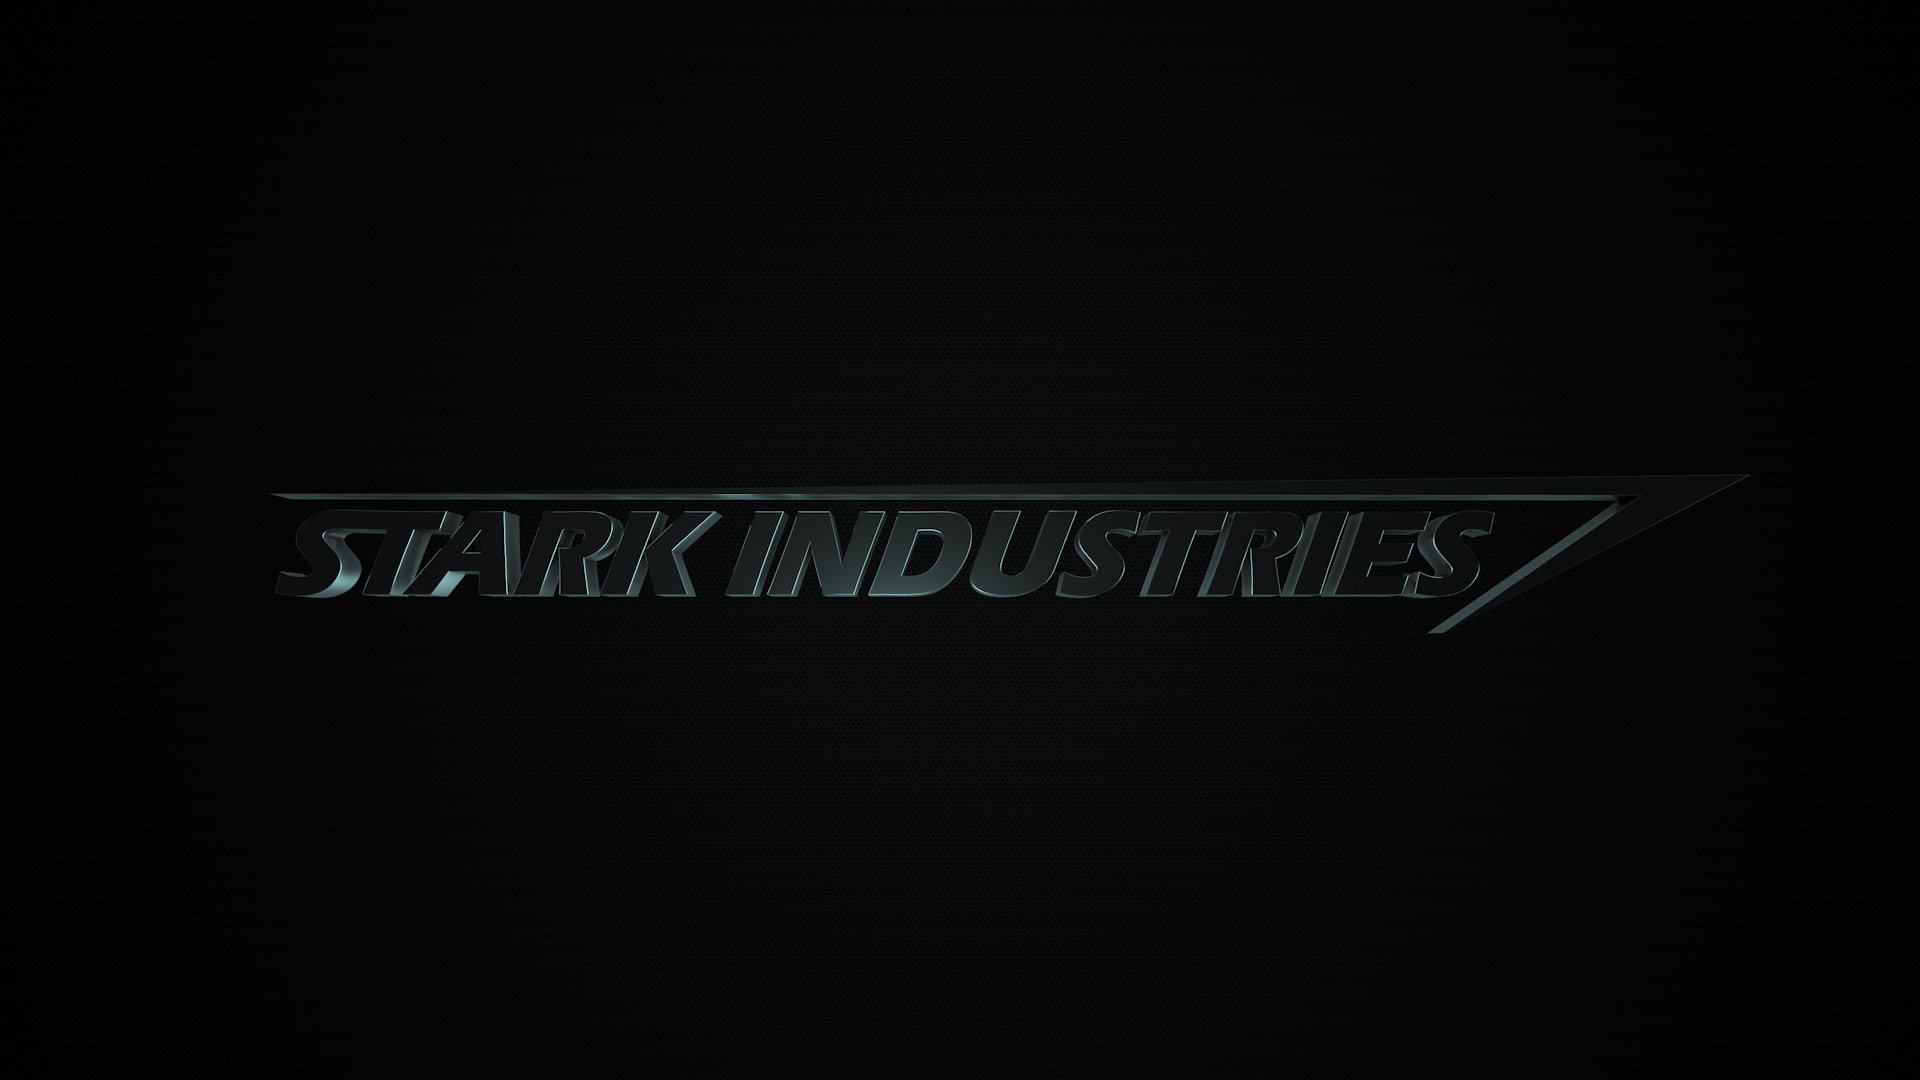 Iron Man Stark Industries Hd Wallpaper Posted By Sarah Simpson